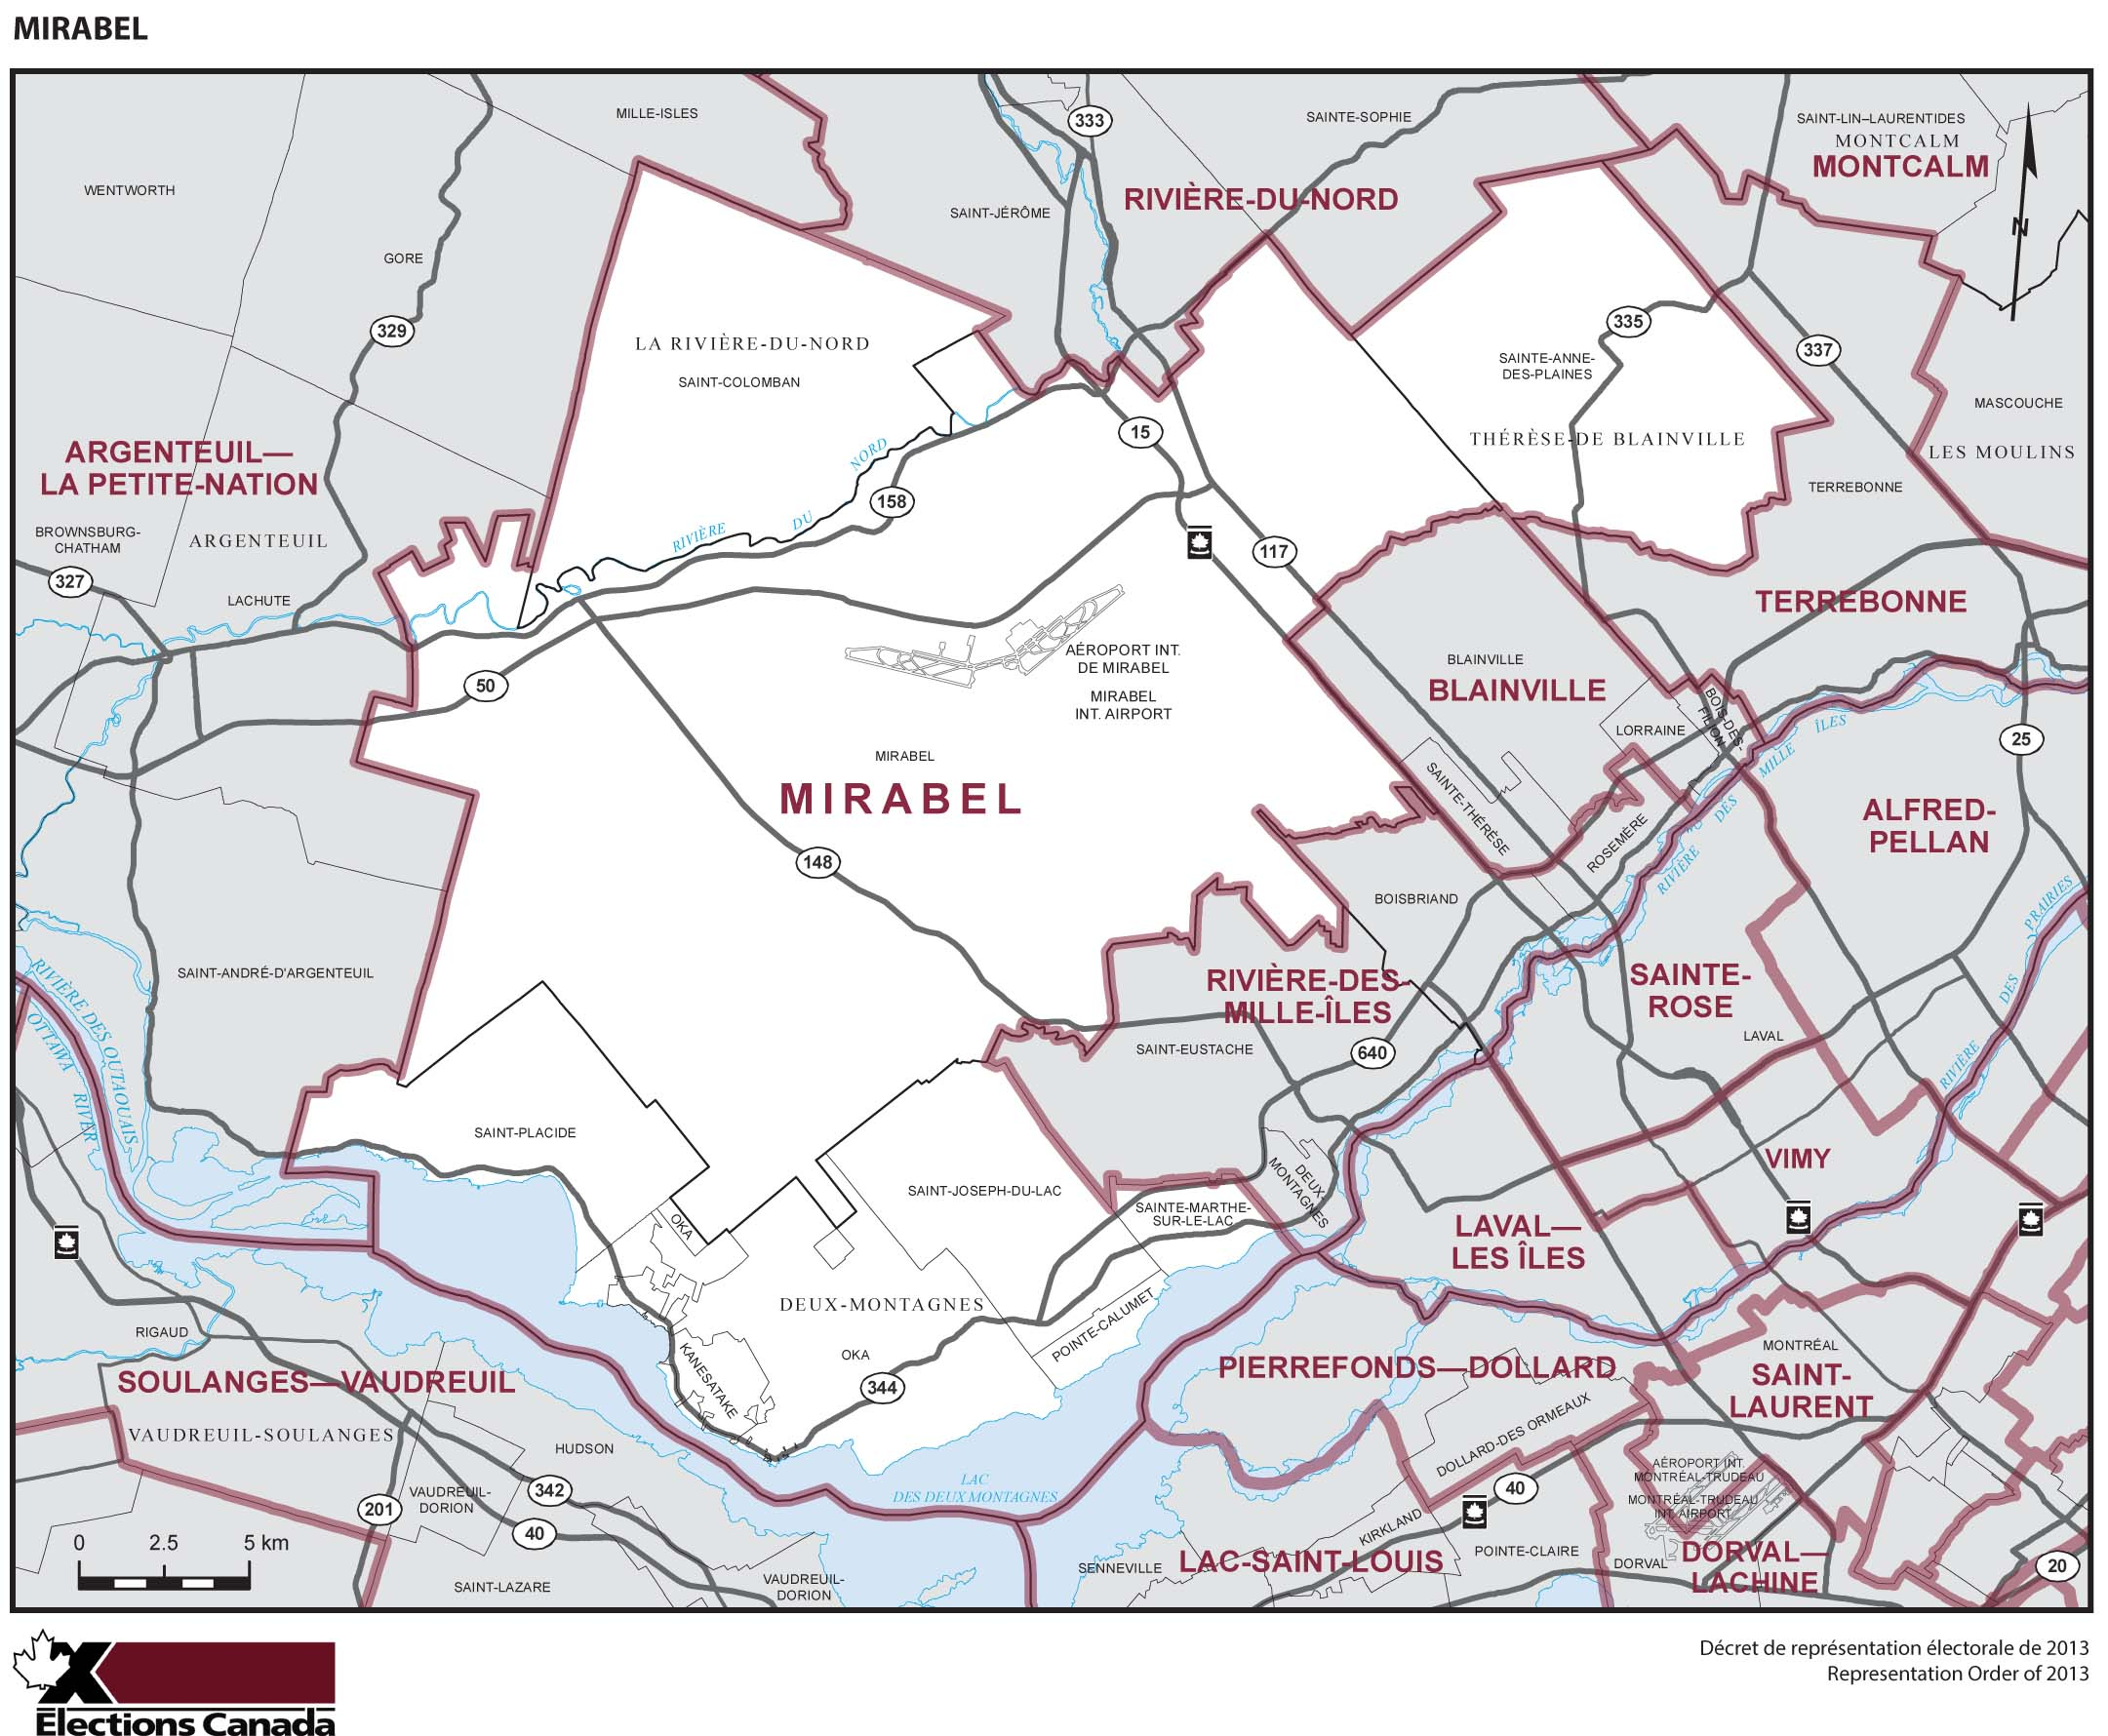 Map: Mirabel, Federal electoral district, 2013 Representation Order (in white), Quebec